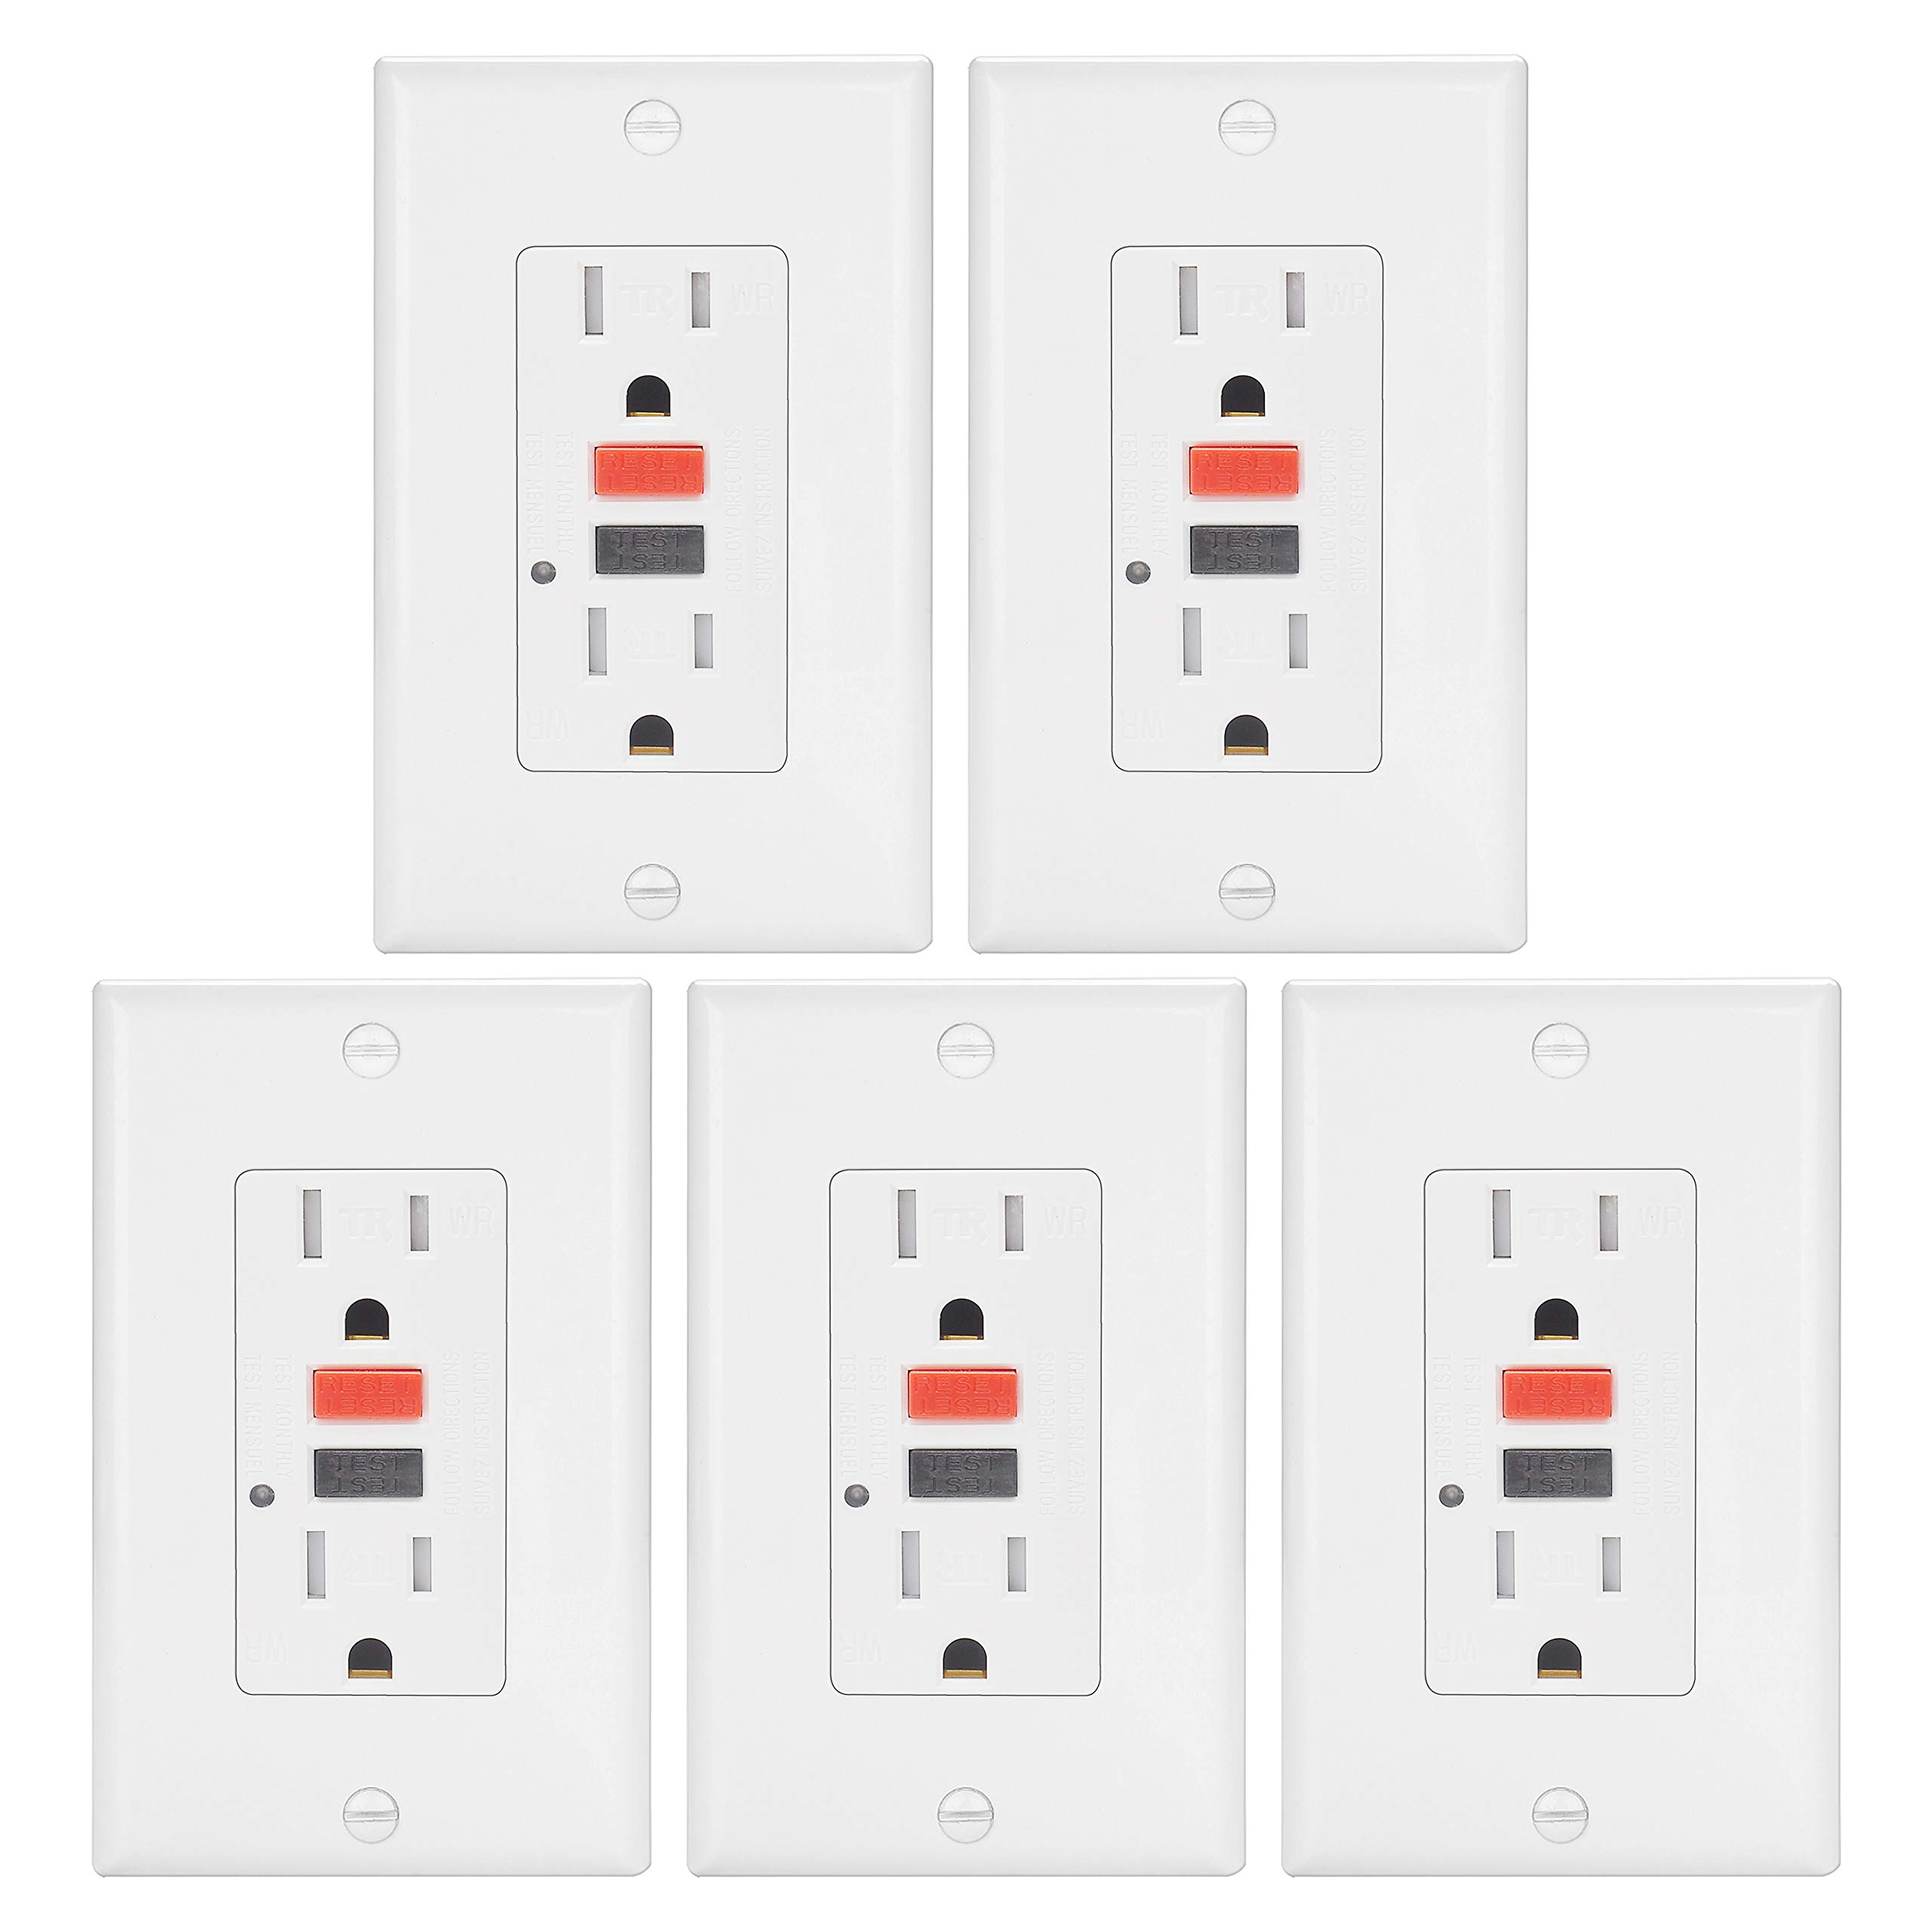 5 Pack - 15A Weather Resistant GFCI Outlet by ELECTECK, Tamper Resistant GFI Receptacle with LED Indicator, Decorator Wall Plates and Screws Included, Residential and Commercial, ETL Certified, White